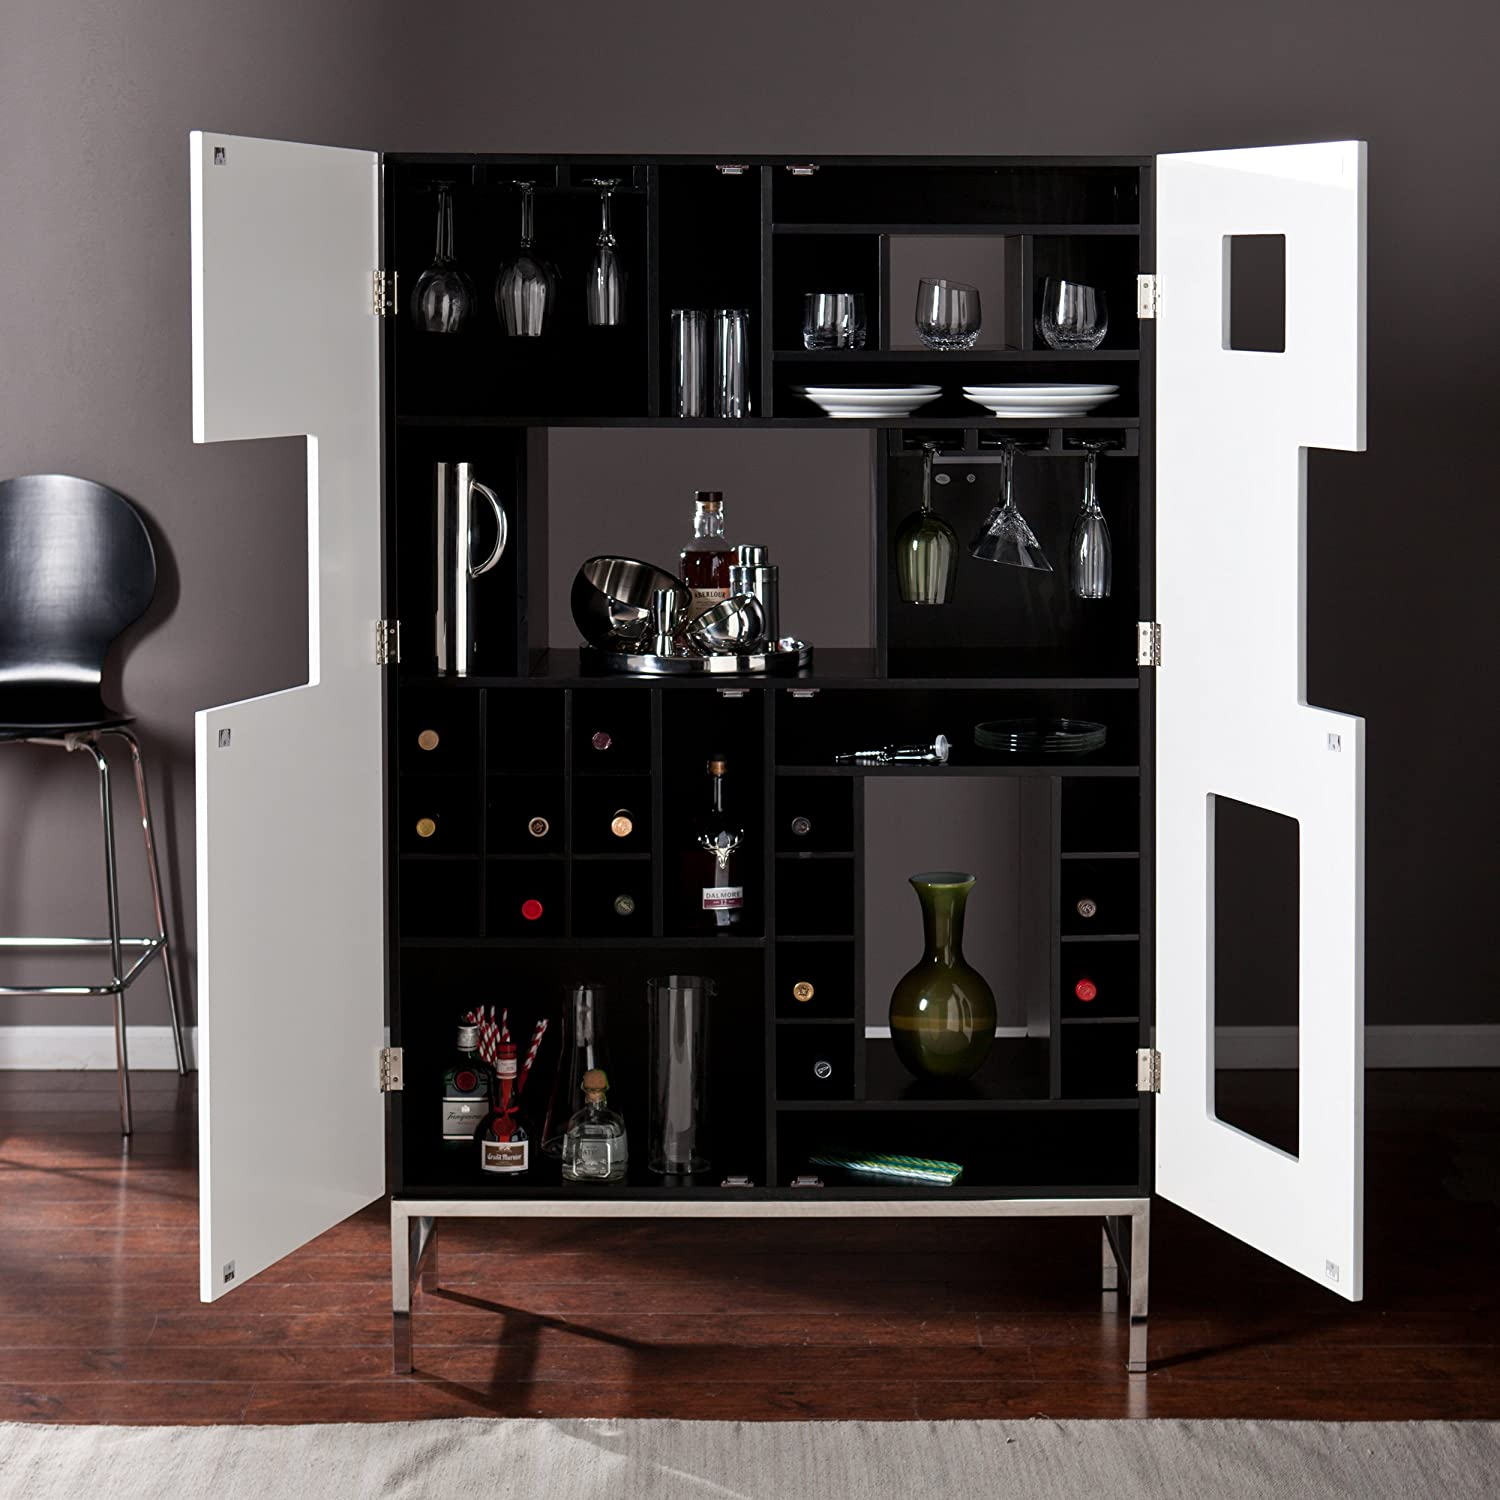 Amazon.com: Southern Enterprises Shadowbox Wine/Bar Cabinet, Black And White  Finish With Stainless Steel Legs